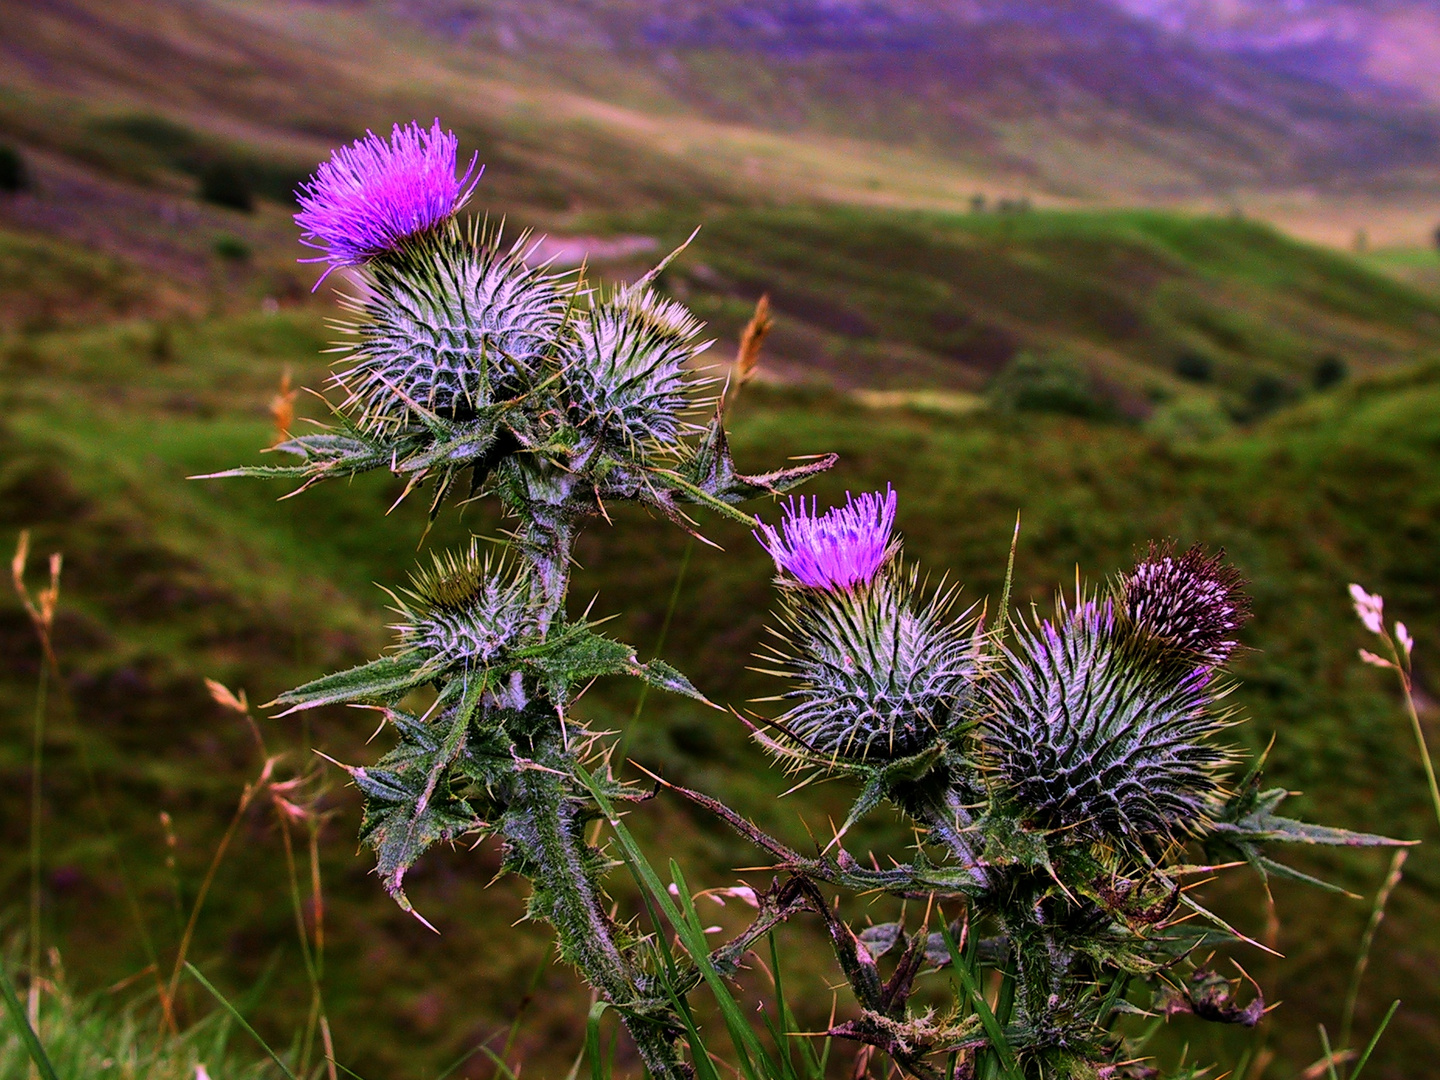 Gift of a Thistle